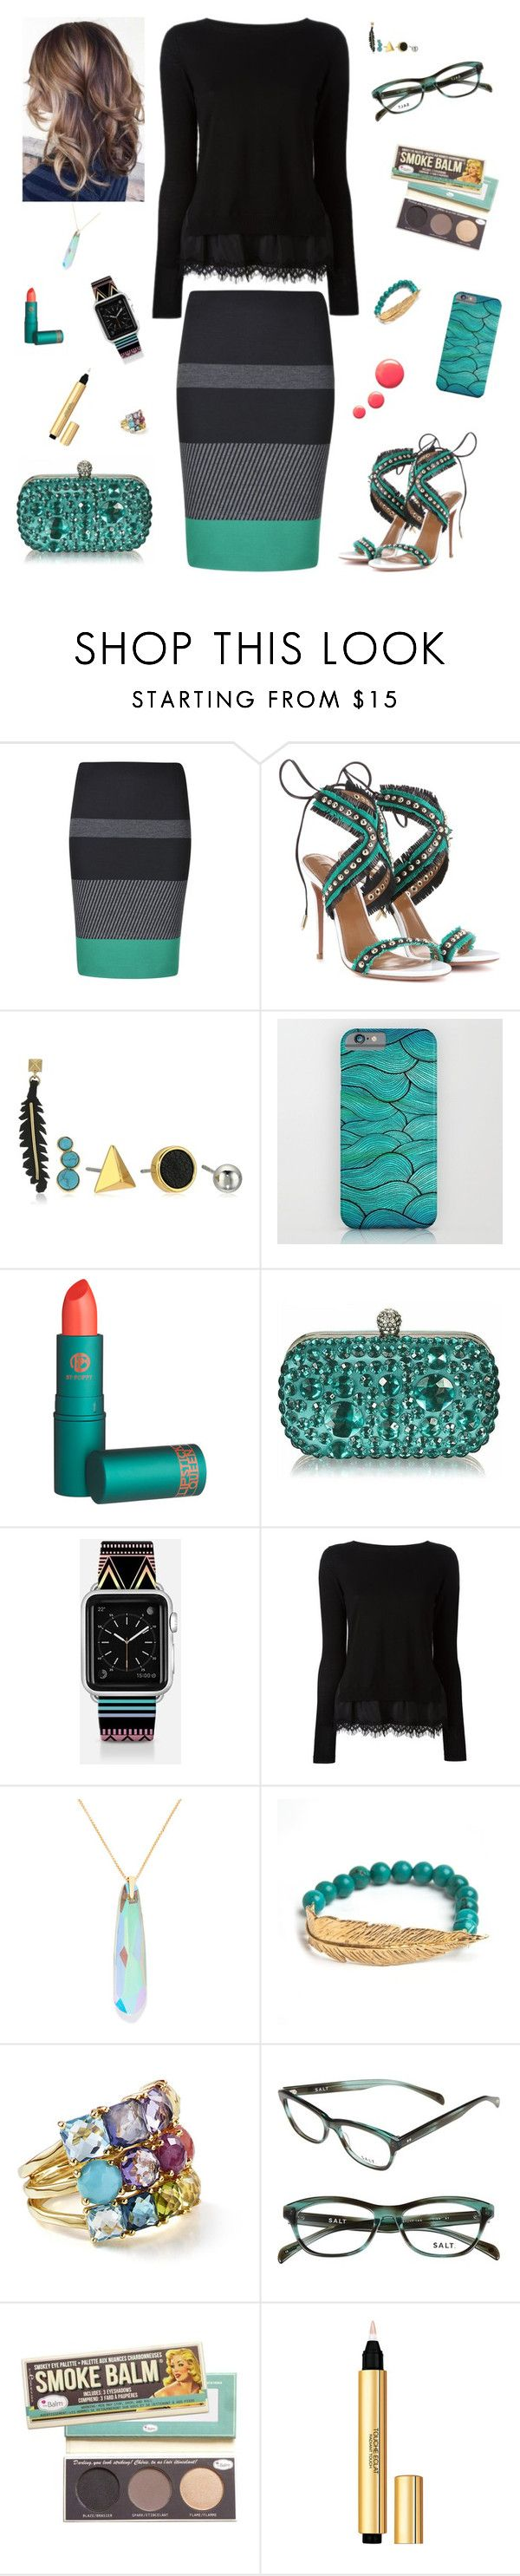 """""""Office Dinner Party"""" by runsonblackcoffee on Polyvore featuring BOSS Hugo Boss, Aquazzura, Rebecca Minkoff, Lipstick Queen, Casetify, Alex and Ani, LeiVanKash, Ippolita, Yves Saint Laurent and Topshop"""